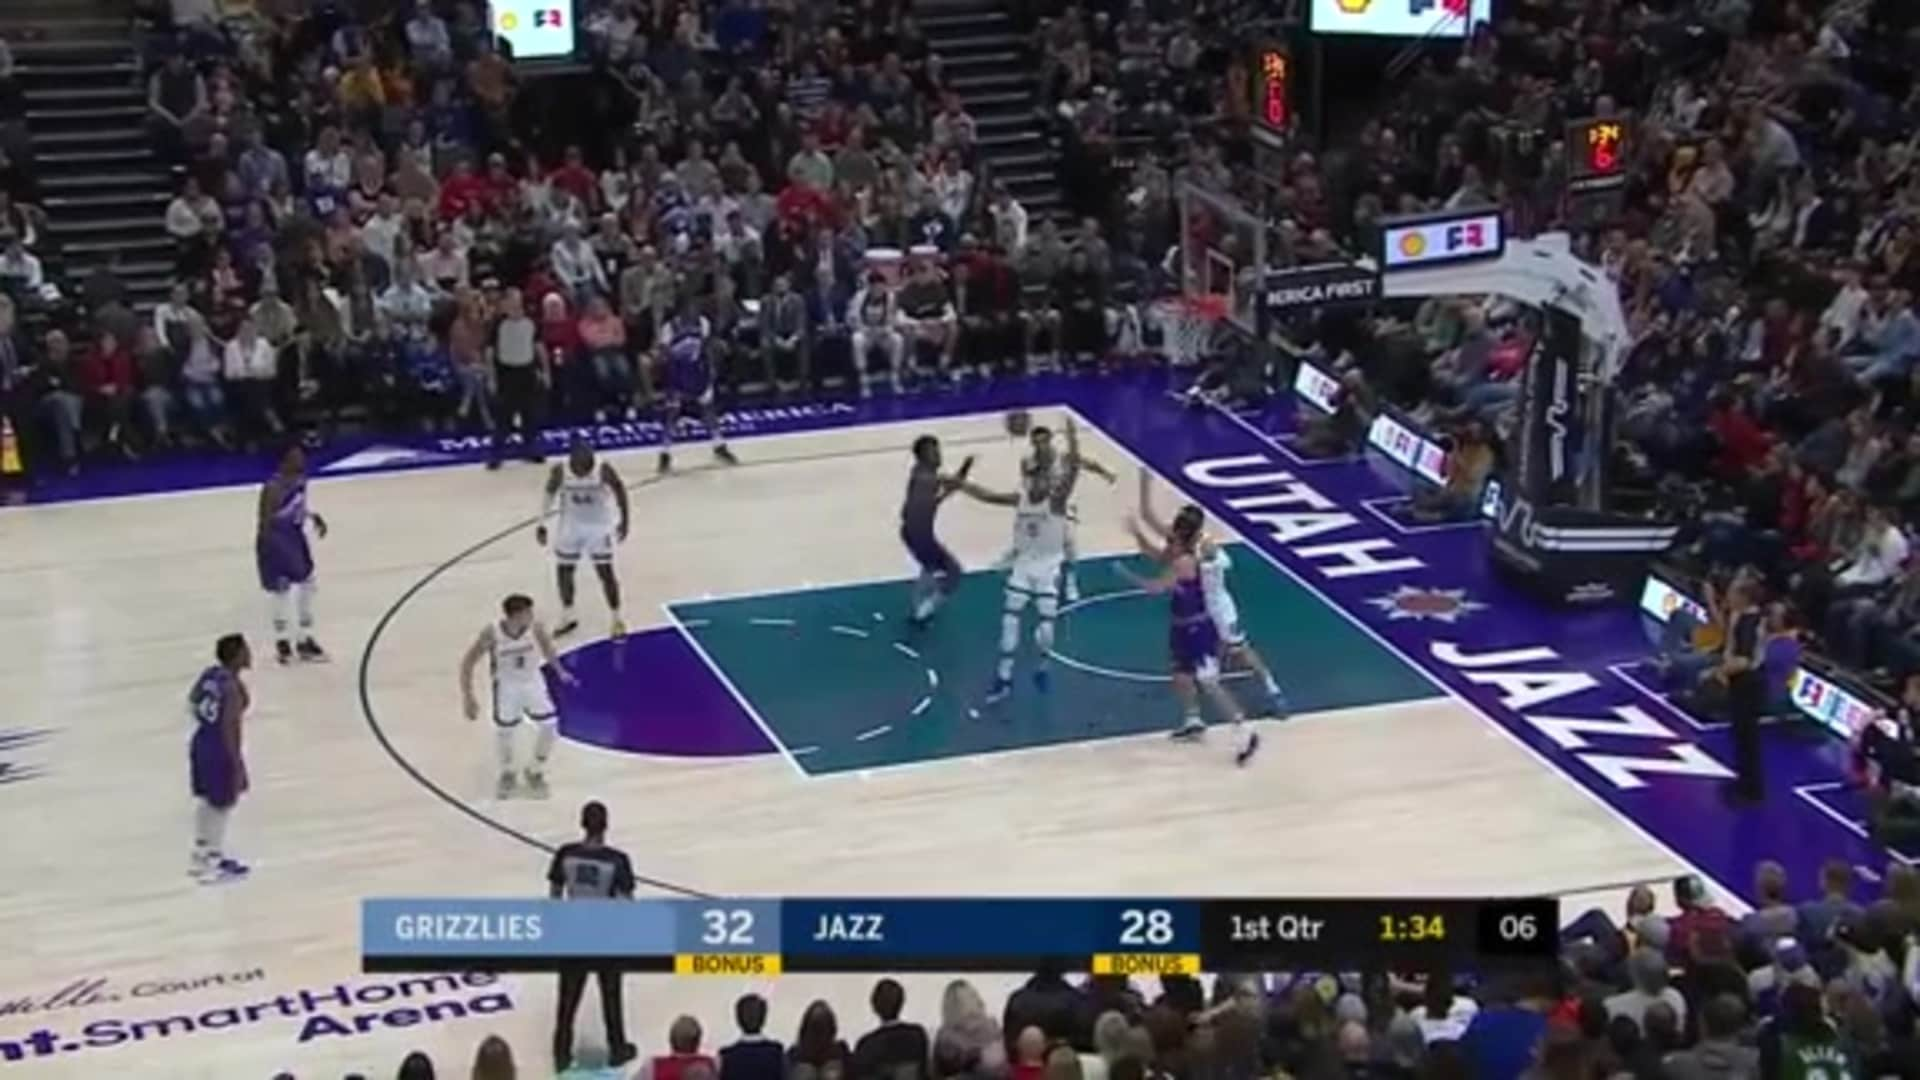 Grizzlies with 5 3-pointers in the 1st quarter vs. Jazz